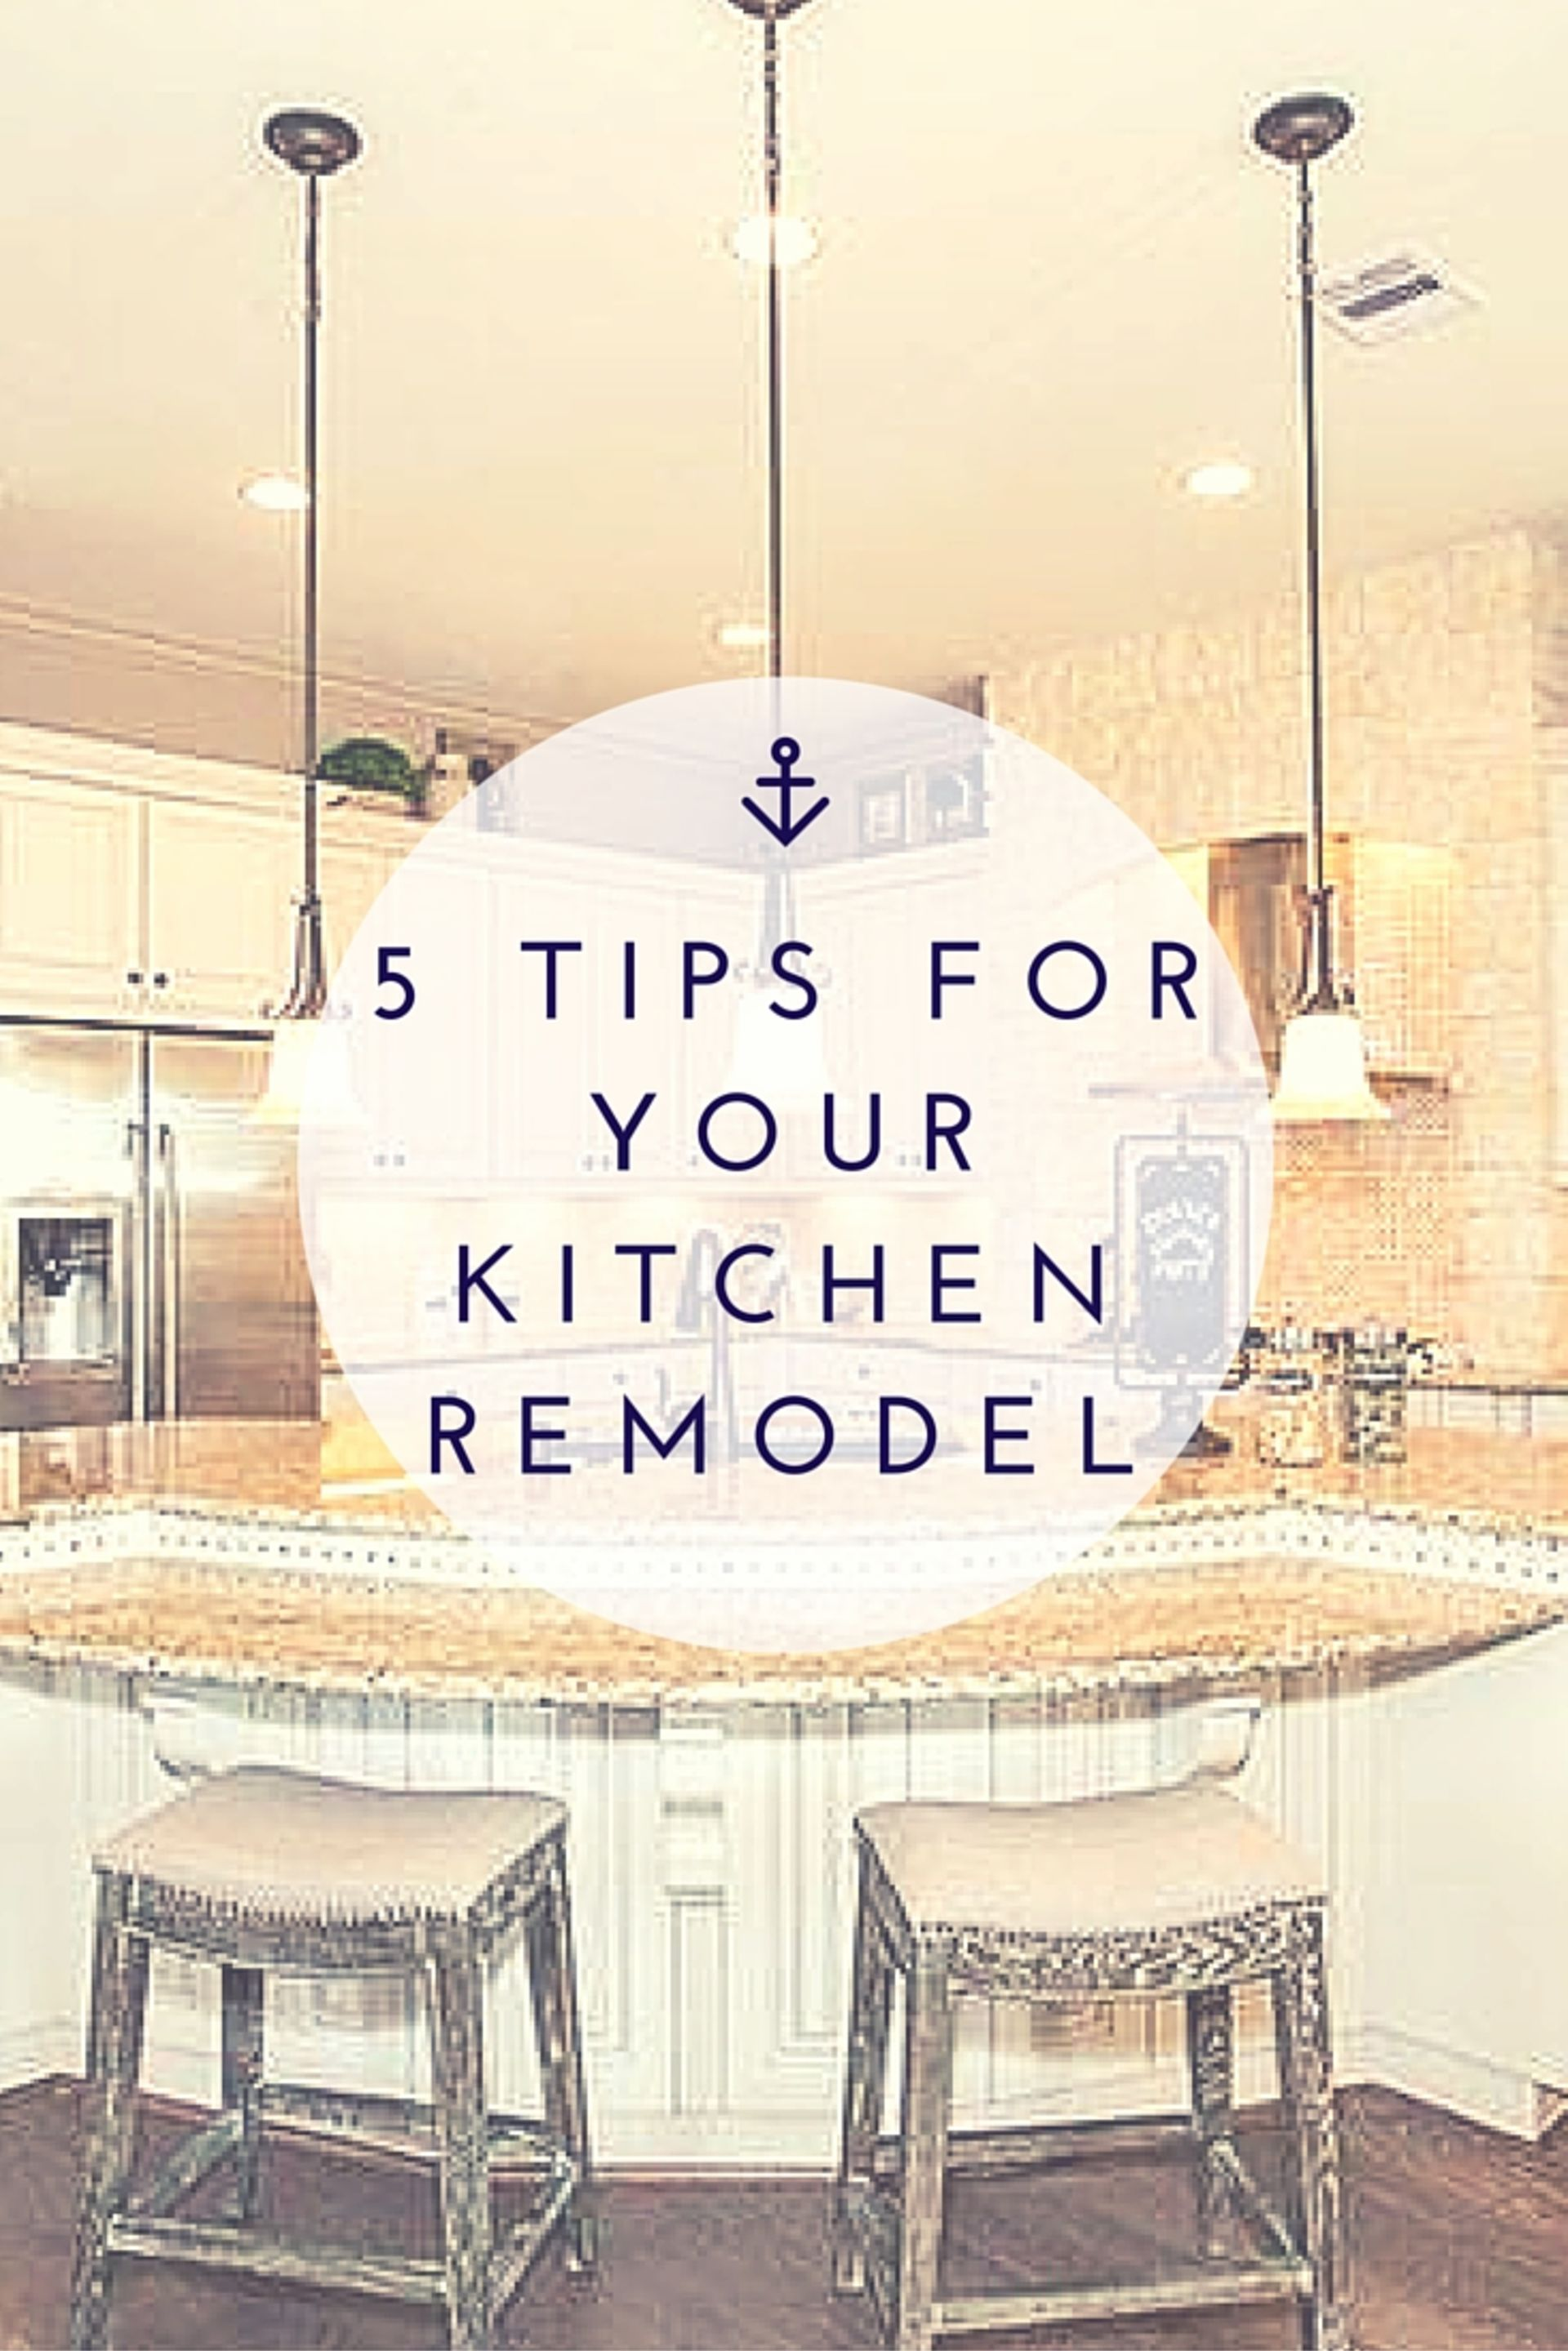 Top 5 Things You Need to Know About Renovating Your Kitchen